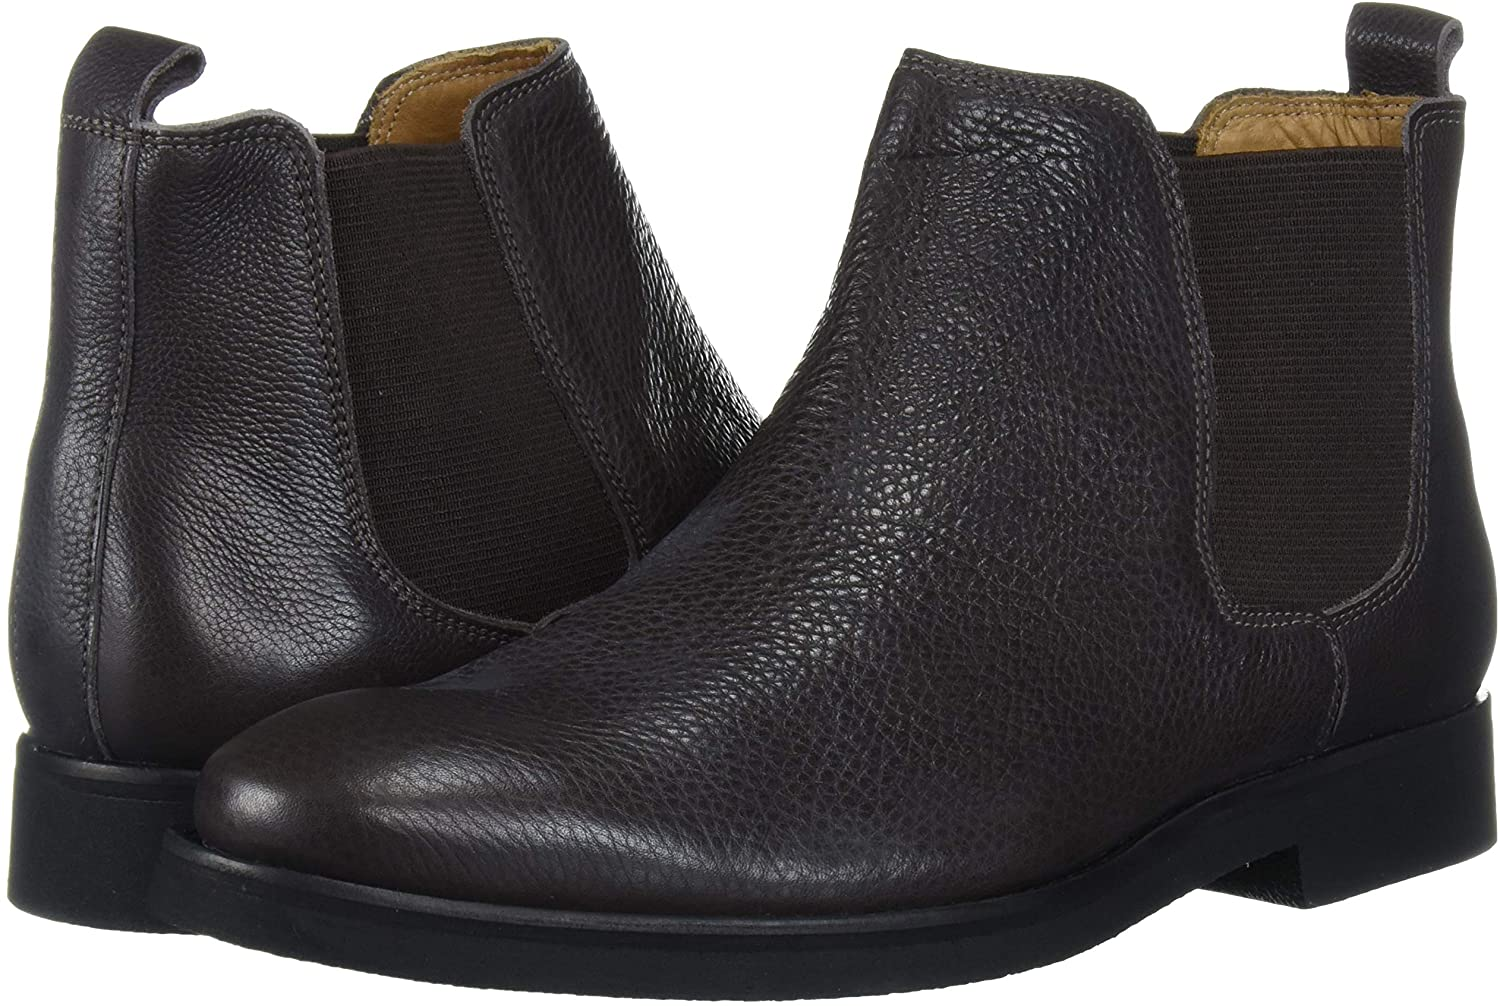 thumbnail 12 - Driver Club USA Men's Shoes Geuine Leather Leather Closed Toe Ankle Fashion